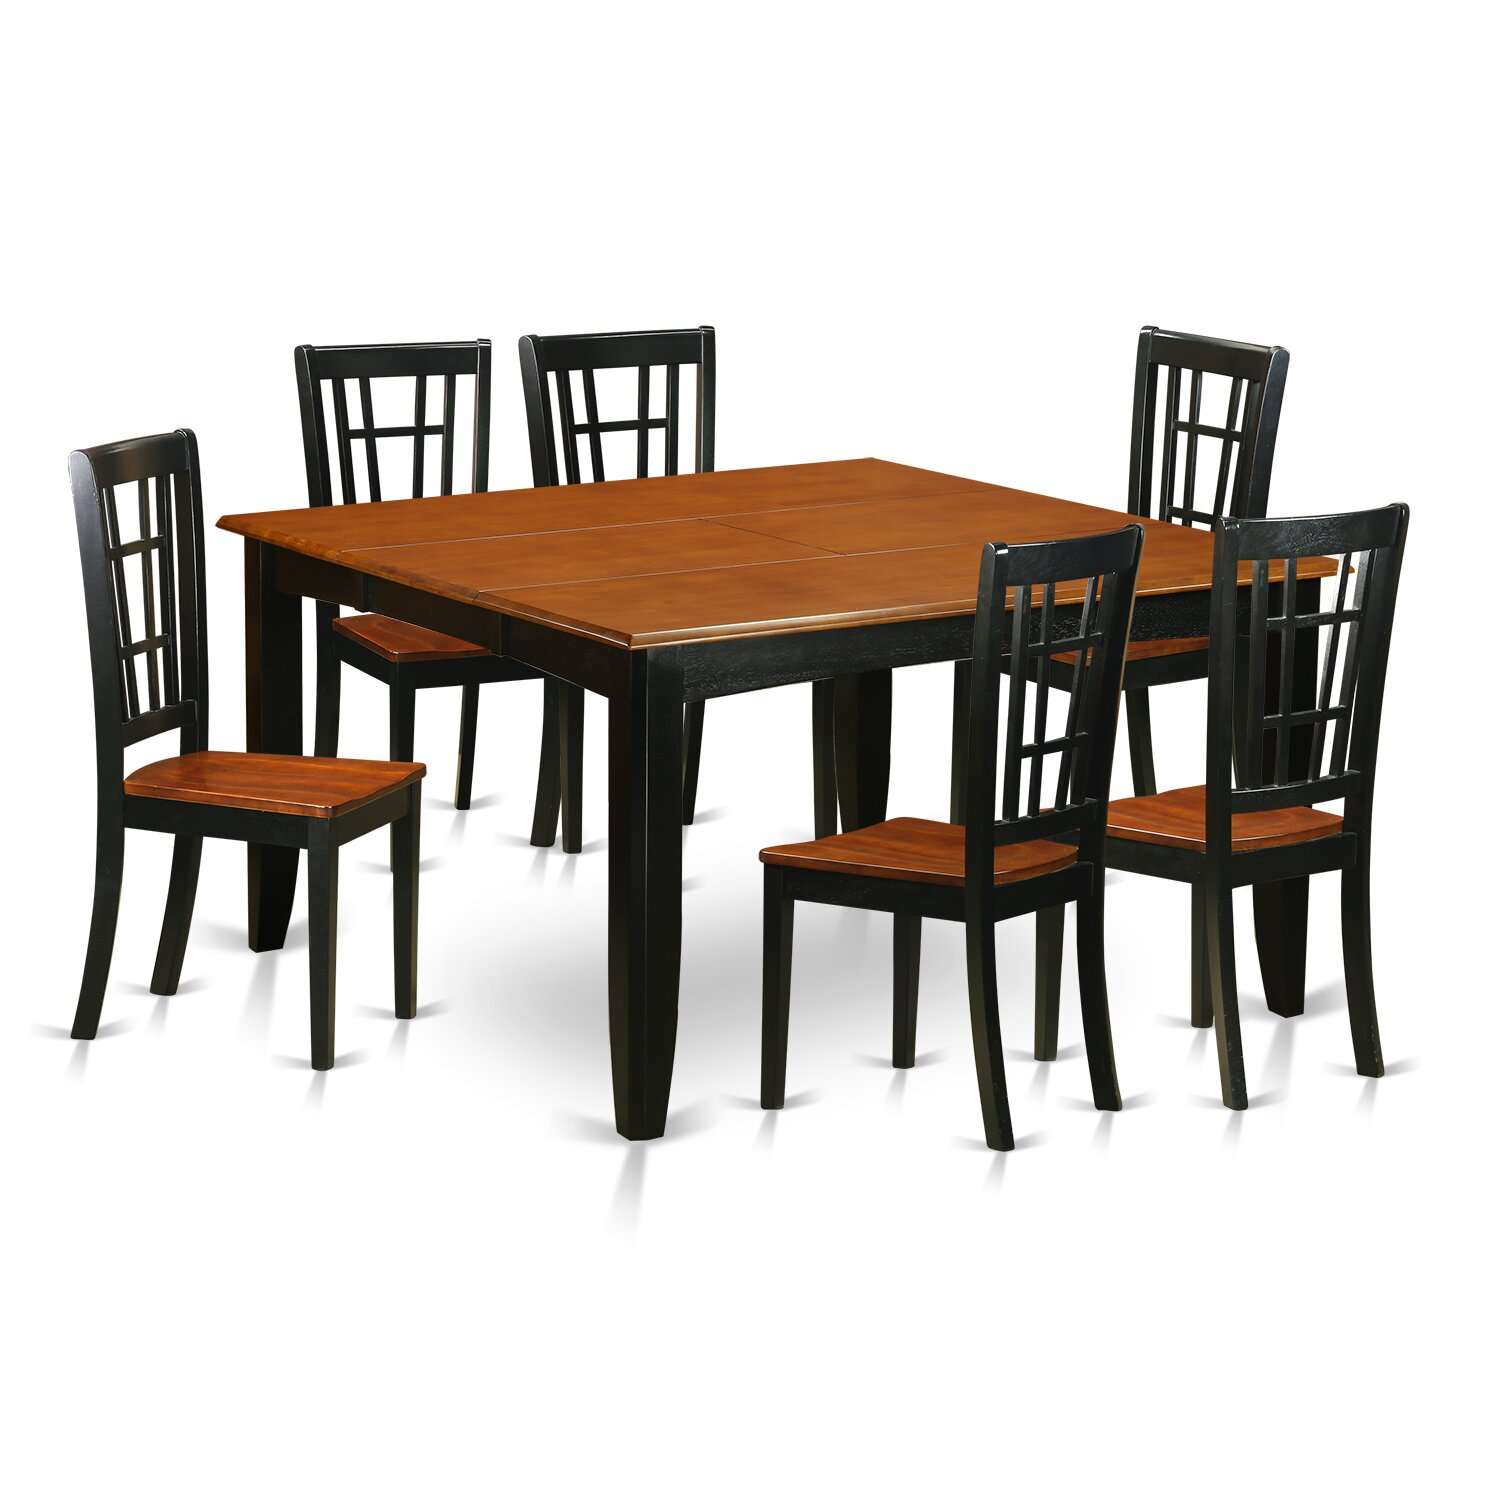 East west parfait 7 piece dining set wayfair - Pc dining room set ...